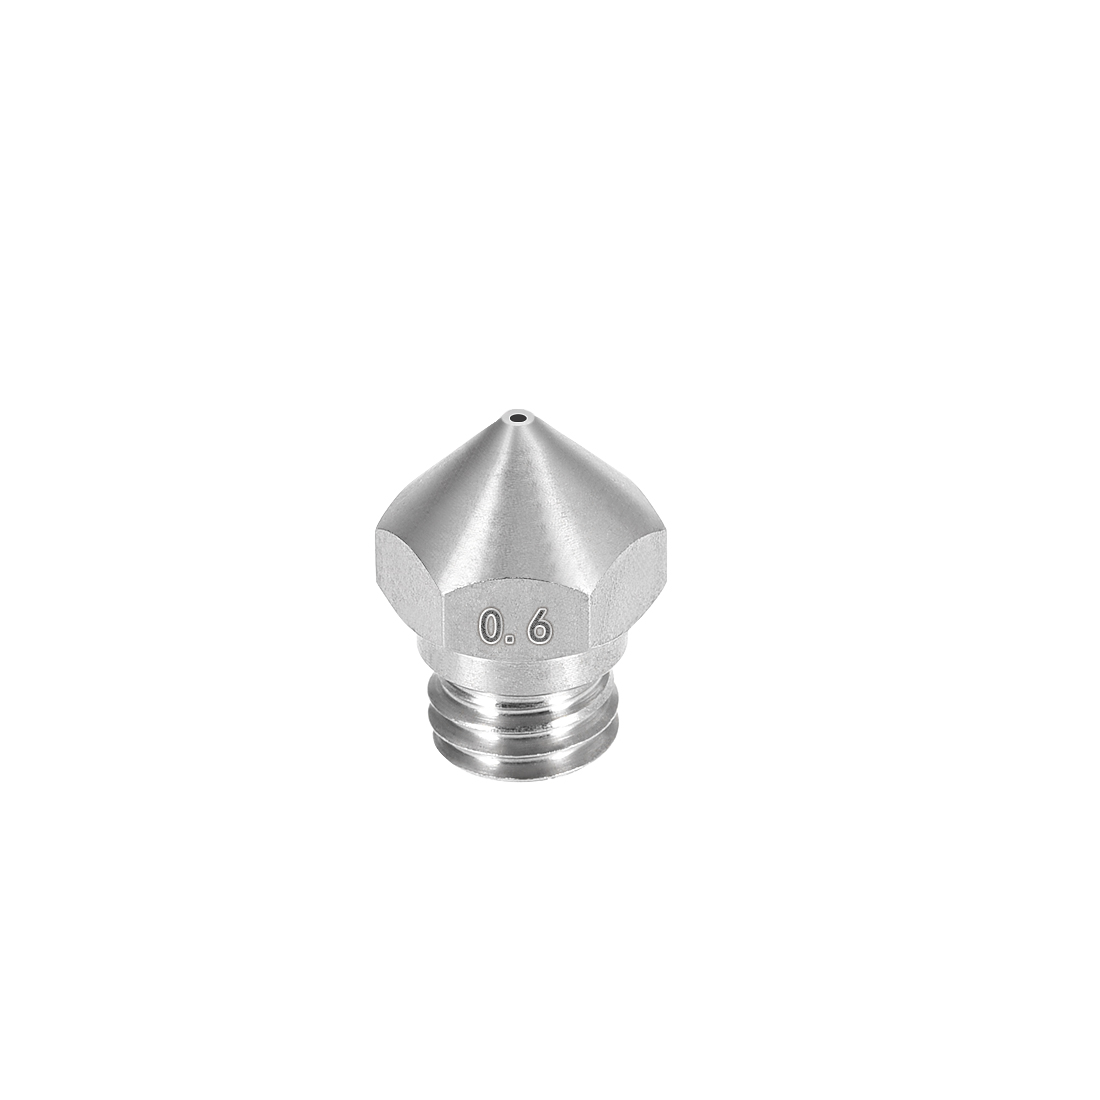 0.6mm 3D Printer Nozzle, Fit for MK10, for 1.75mm Filament Stainless Steel 1pcs